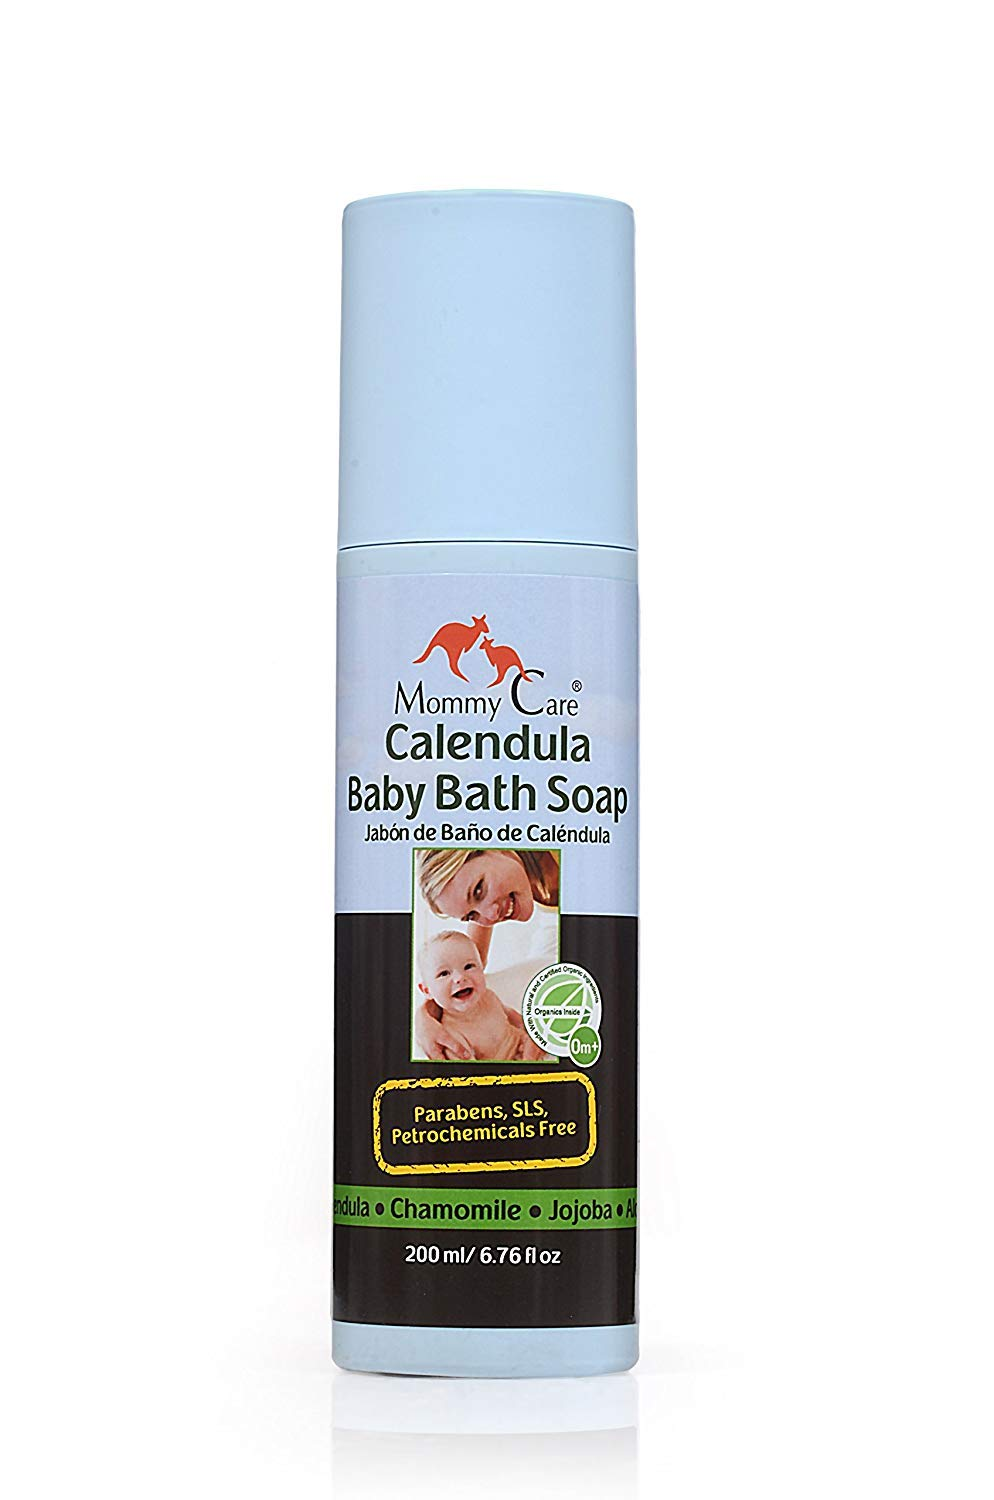 Certified Organic Calendula Baby Bath Soap 6.76 fl.oz 200ml Body Wash for Babies All Skin Types Great for Eczema and Dry Skin [SLS and Paraben Free] Mommy Care M11